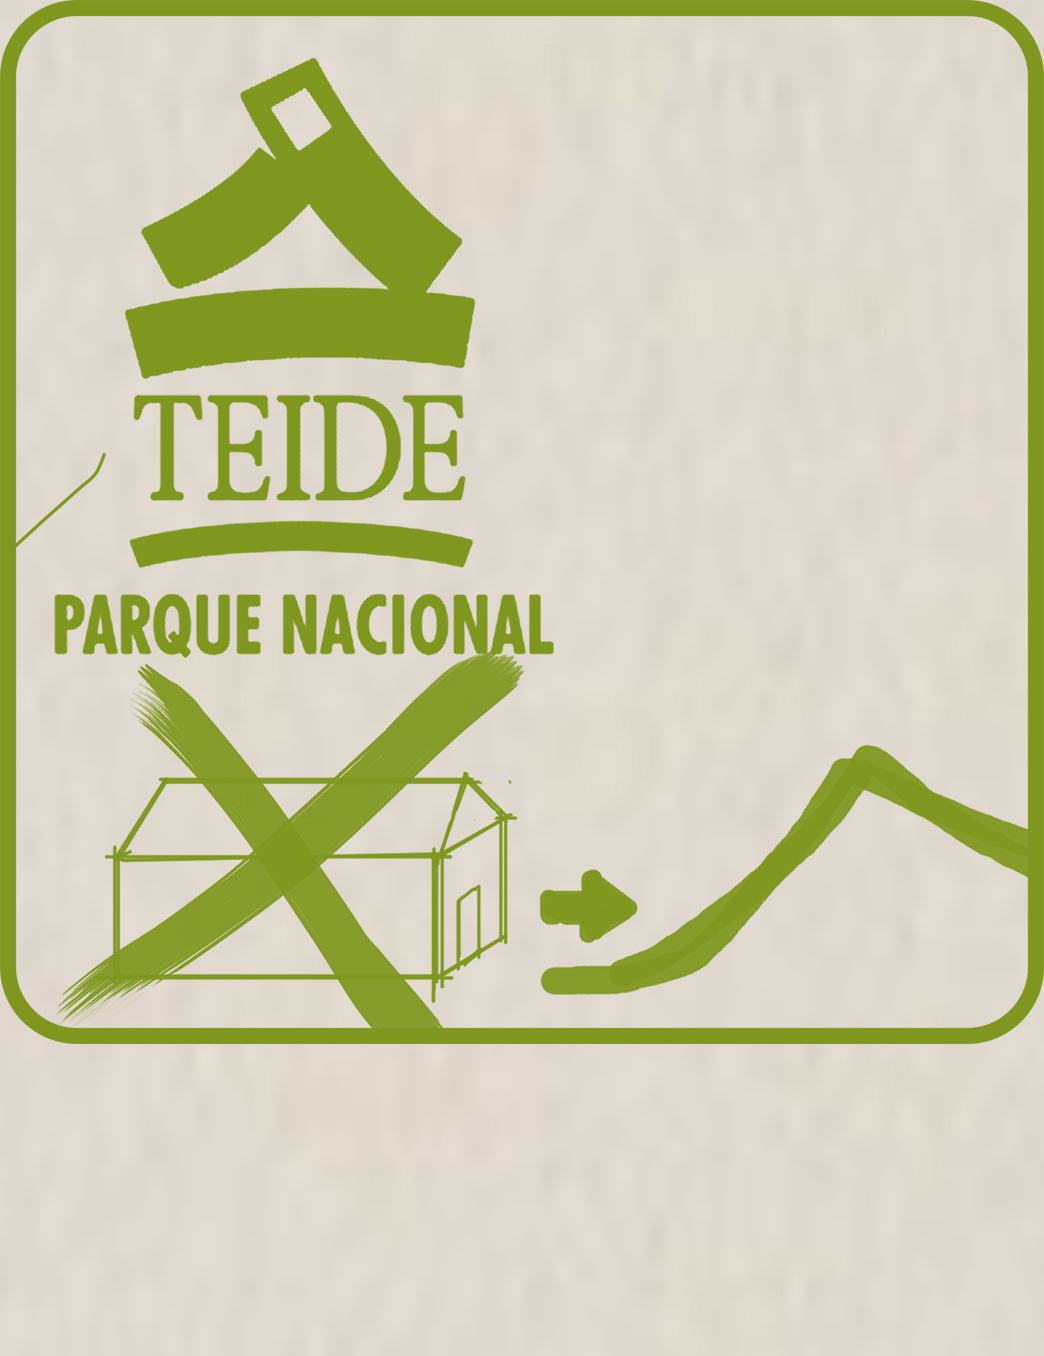 Re. Sanatorio Teide